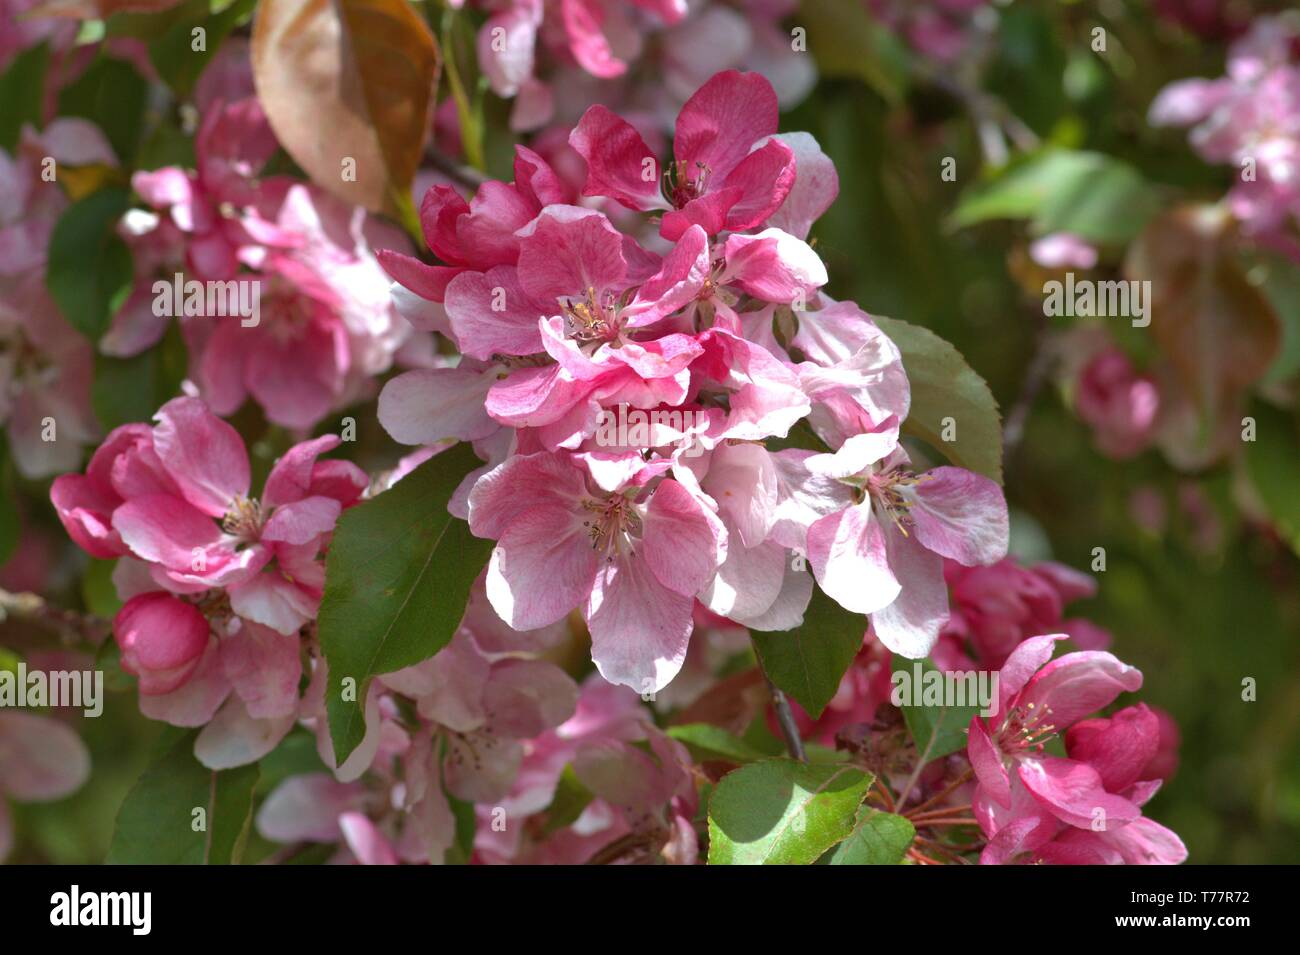 Schleswig, Deutschland. 05th May, 2019. 05.05.2019, Schleswig-Holstein, Schleswig: Detail of a flowering ornamental apple Rudolph, Malus Rudolph on a public estate in Schleswig. Order: rose-like (Rosales), family: rose-growing (Rosaceae), tribe: pyreae, sub-tribe: pome-fruit waxes (Pyrinae), genus: apple   usage worldwide Credit: dpa/Alamy Live News - Stock Image